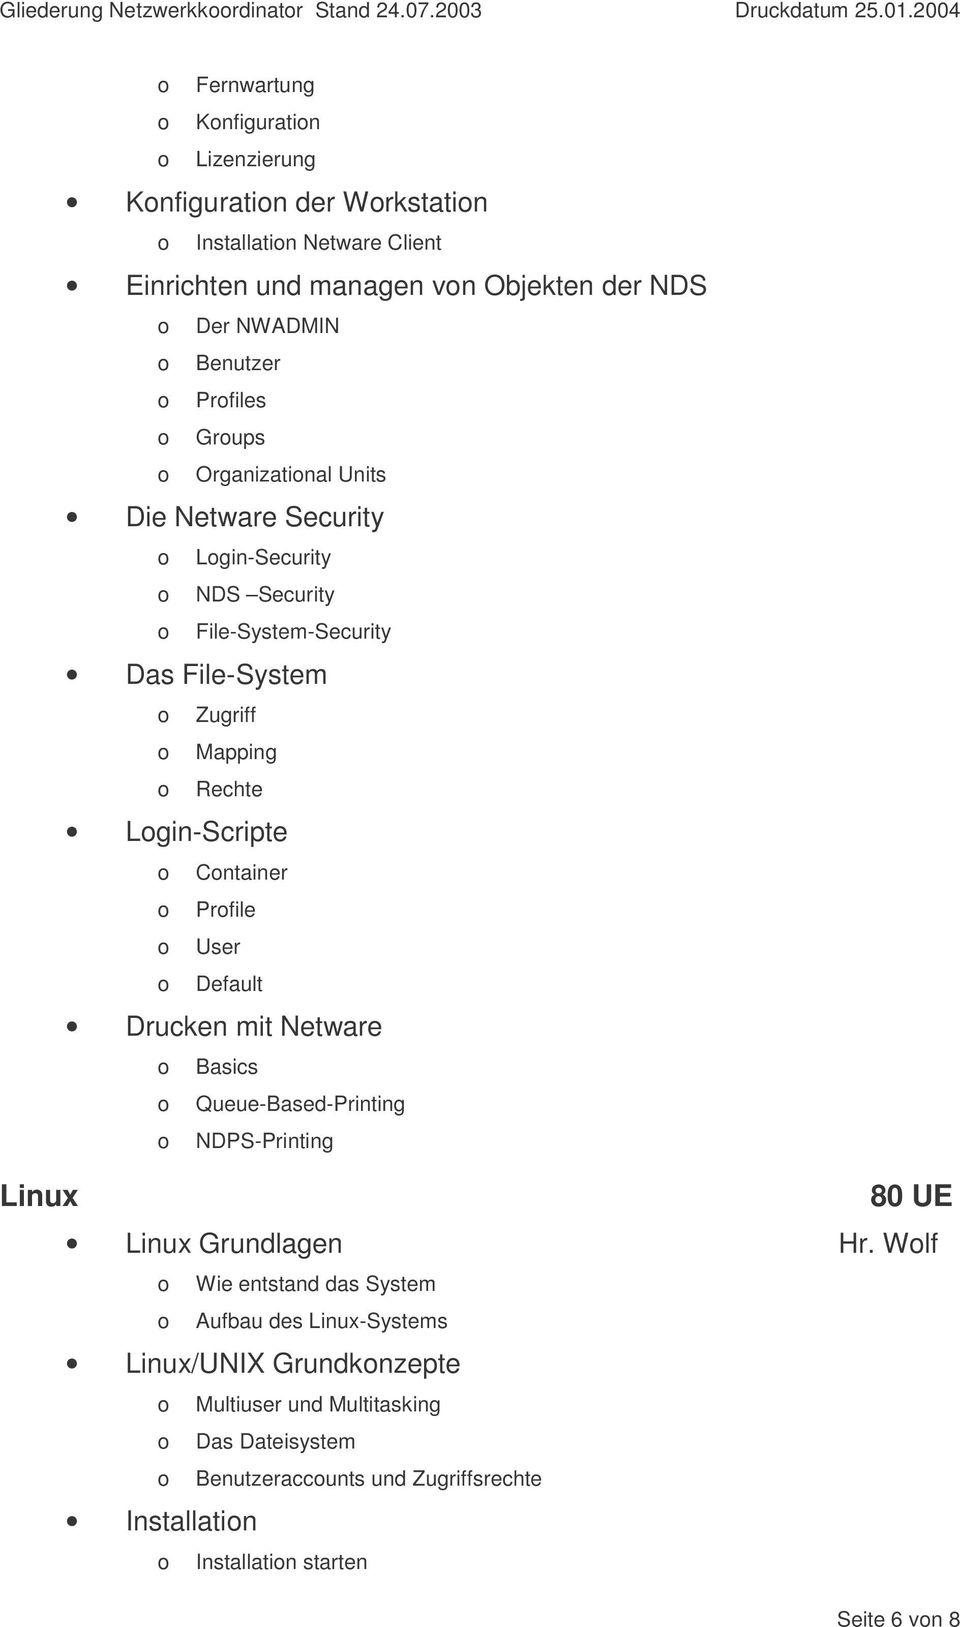 Organizatinal Units Die Netware Security Lgin-Security NDS Security File-System-Security Das File-System Zugriff Mapping Rechte Lgin-Scripte Cntainer Prfile User Default